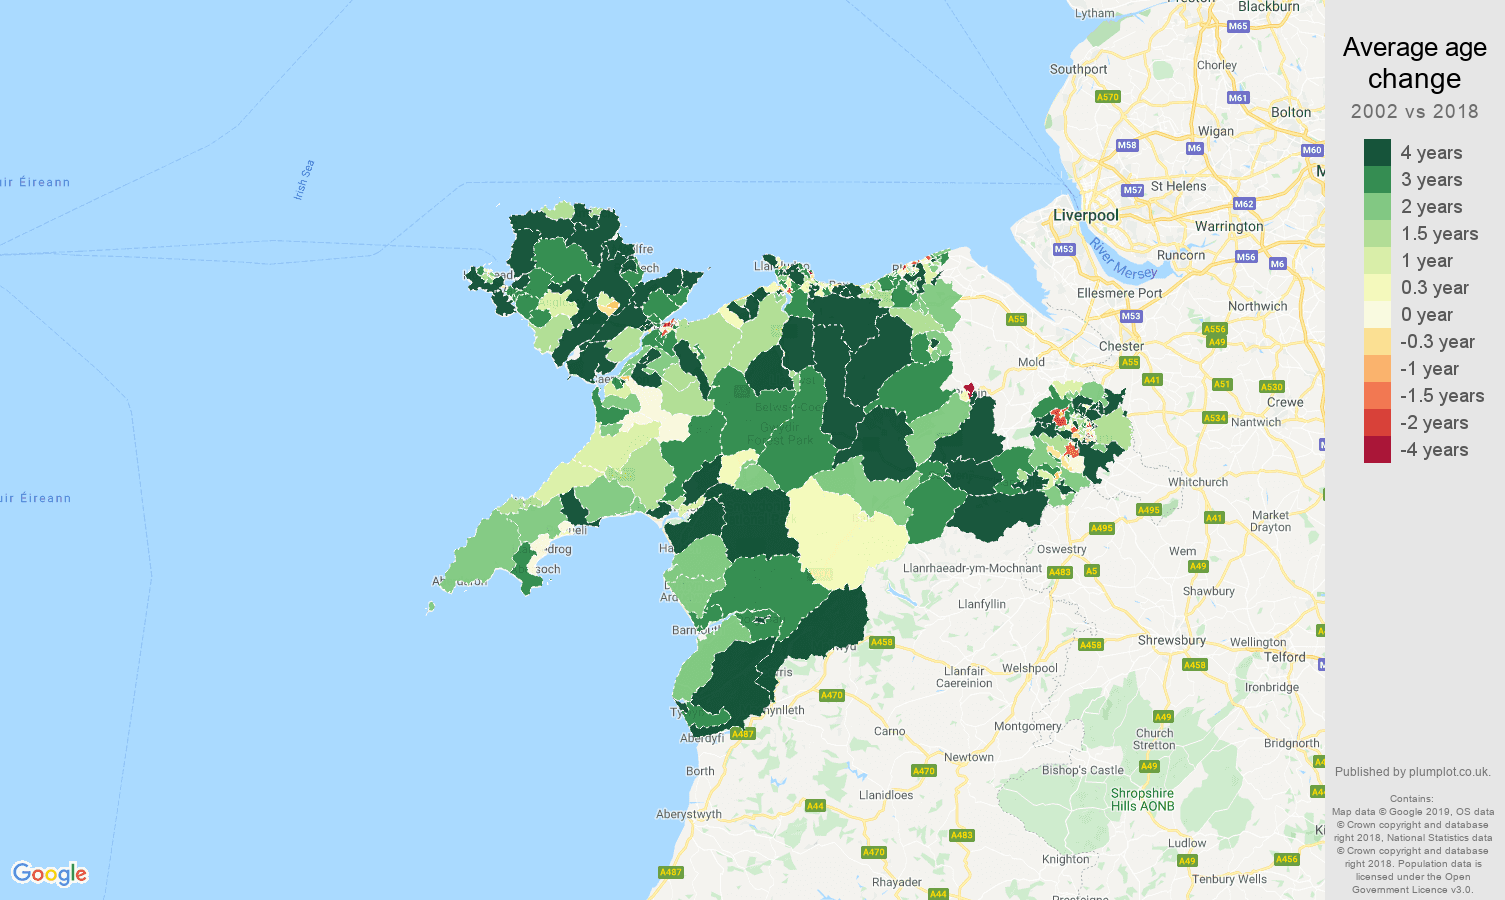 Llandudno average age change map